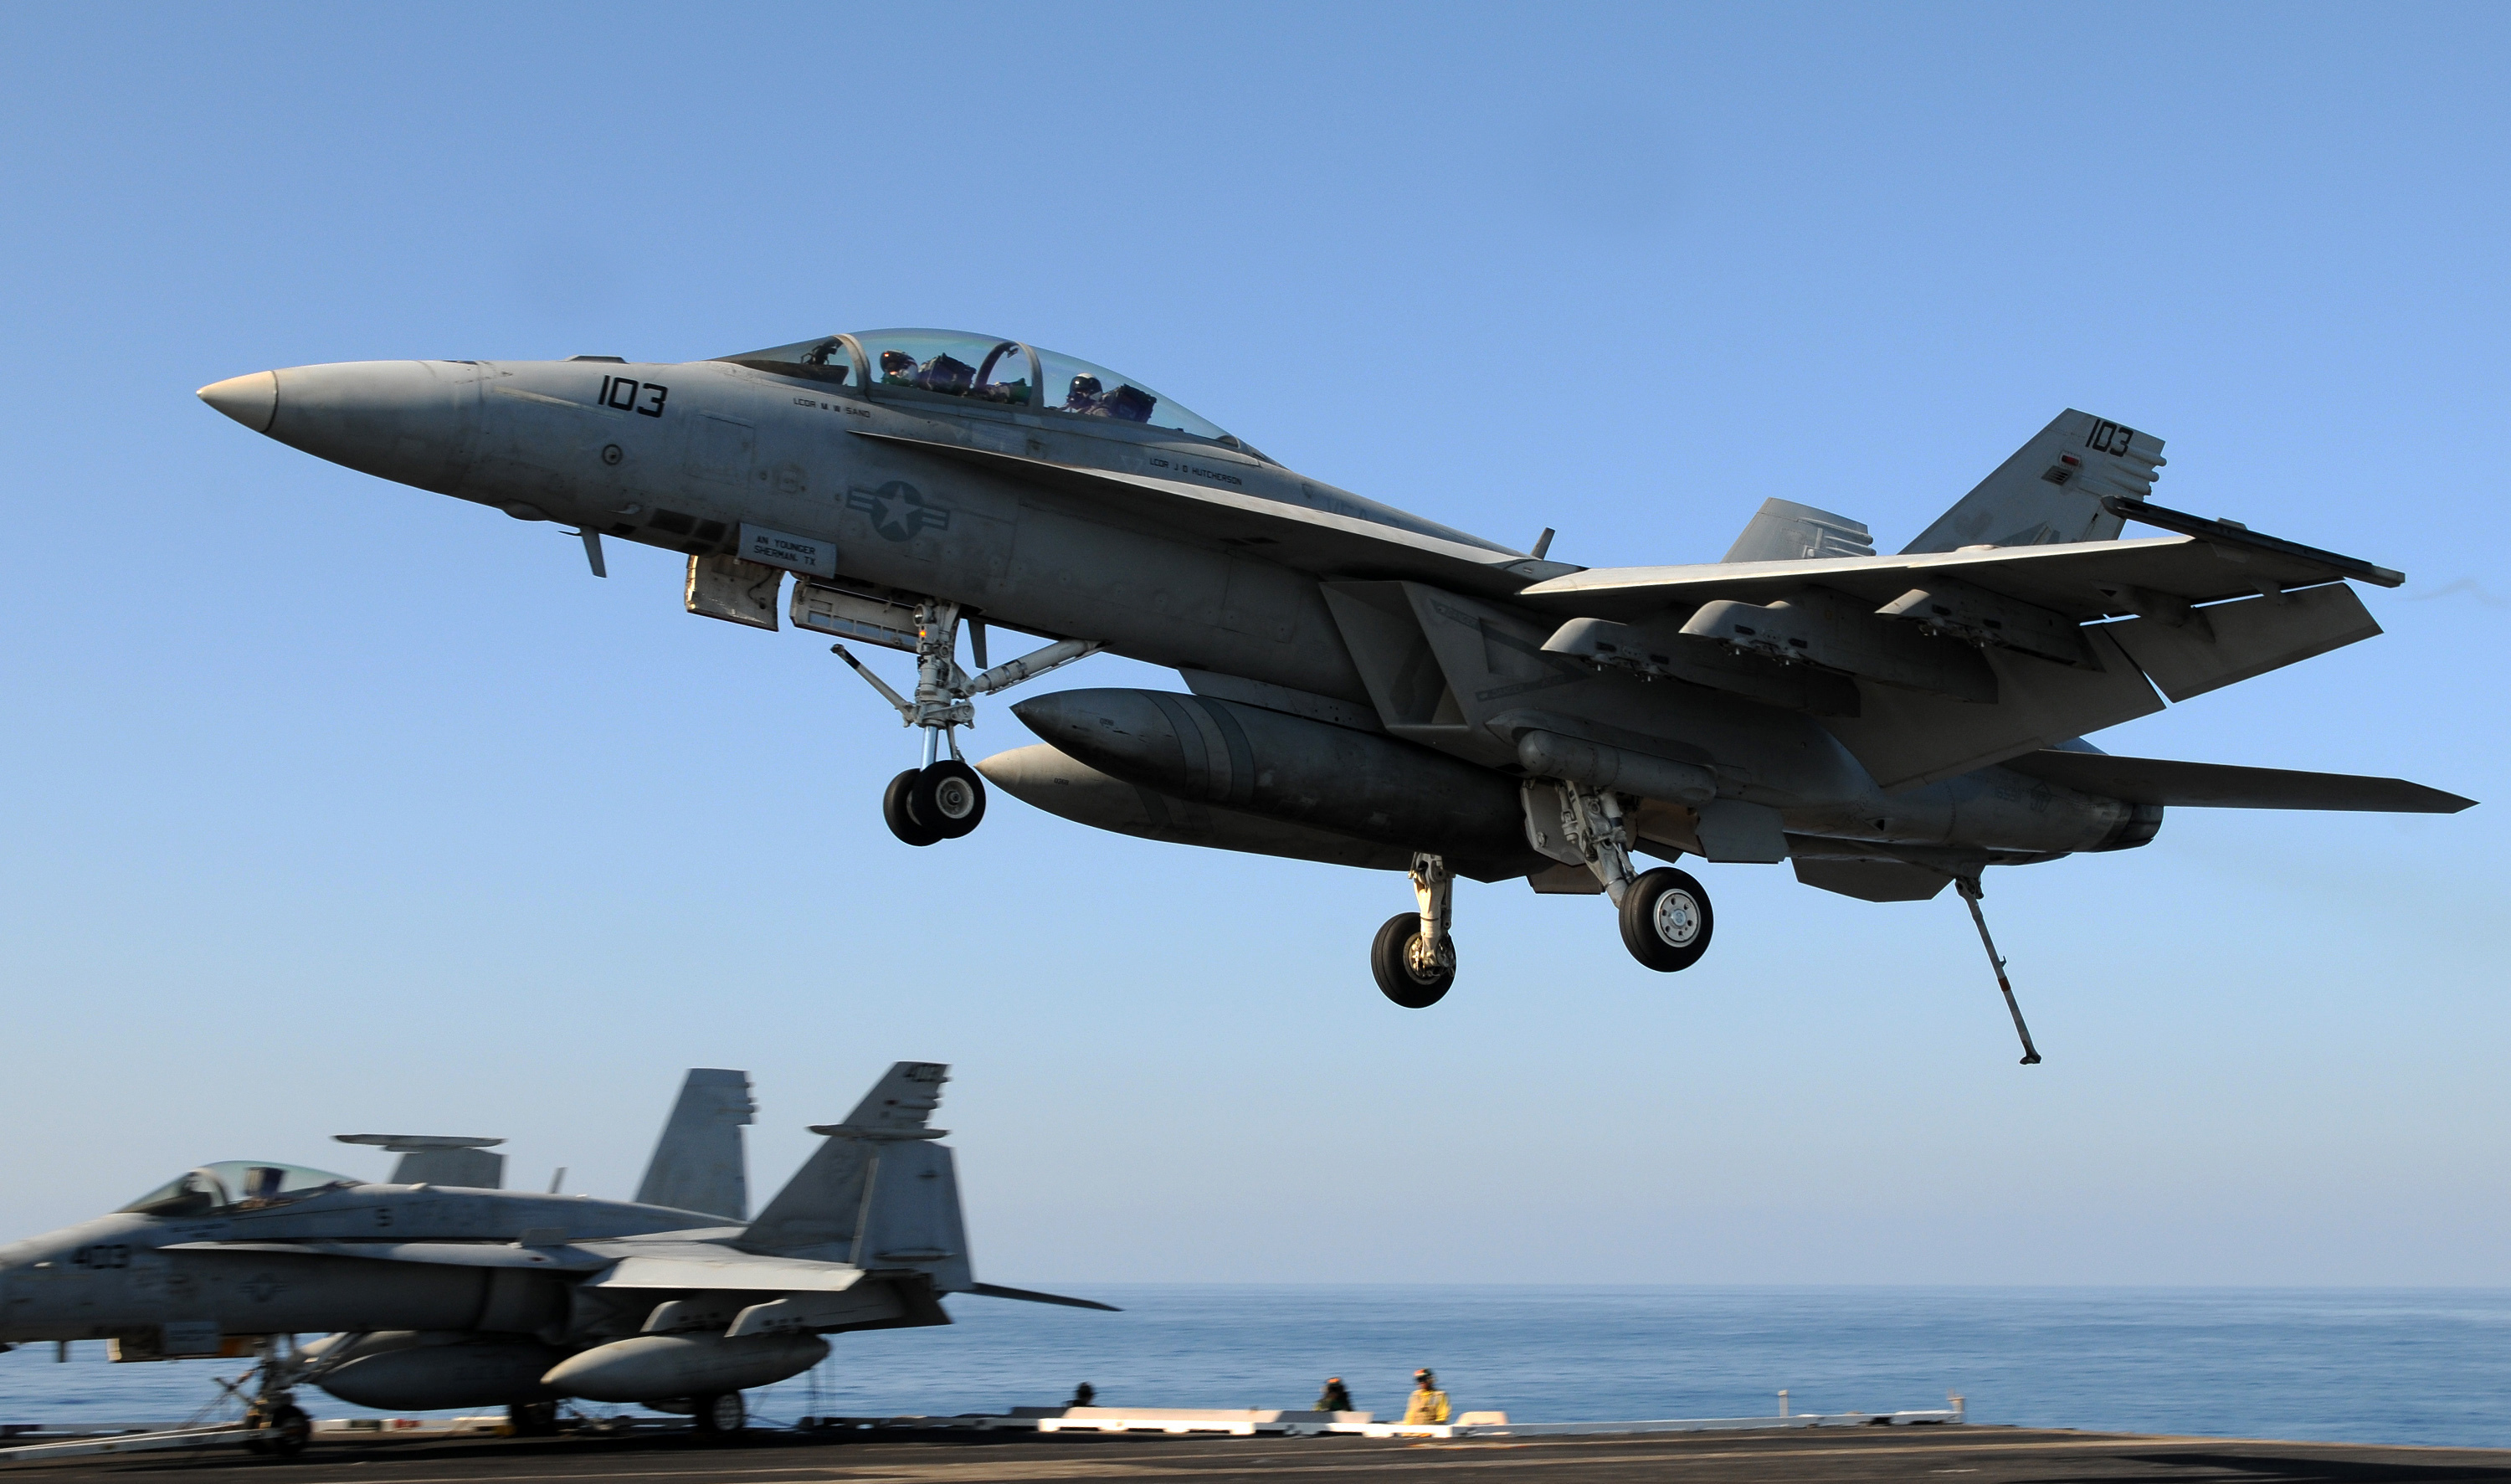 F/A-18F Super Hornet prepares to land